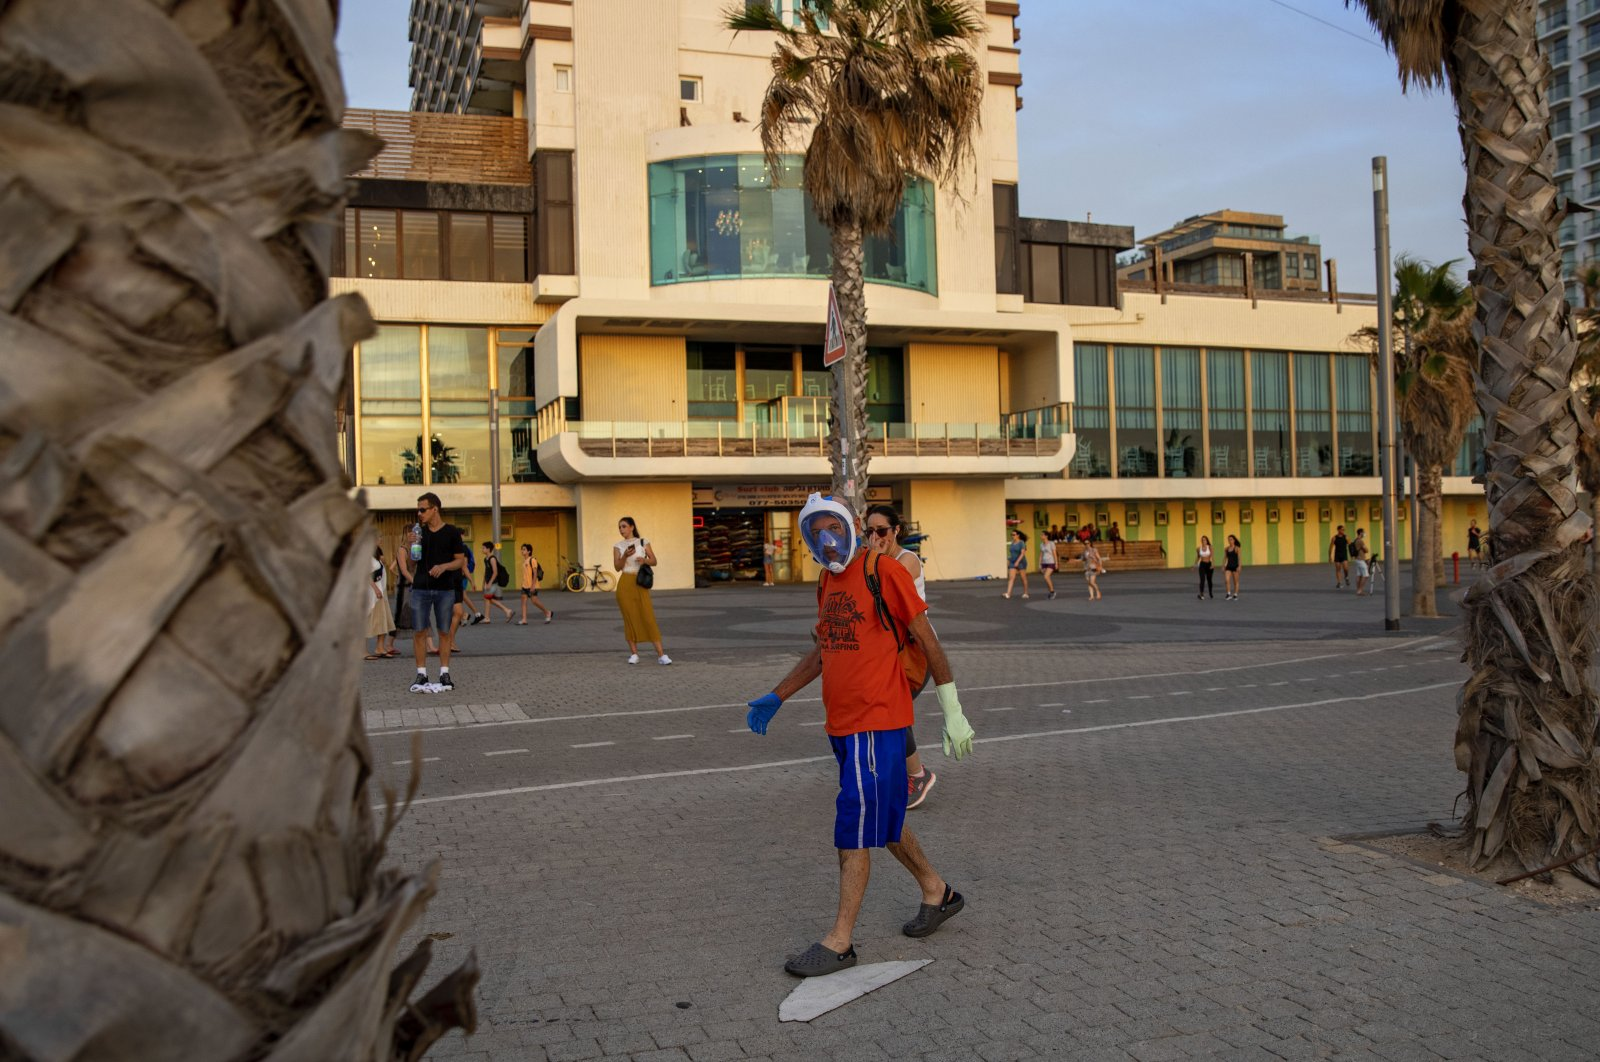 A man wears a diving mask as a protective face mask at the beachfront, Tel Aviv, Israel, May 16, 2020. (AP Photo)